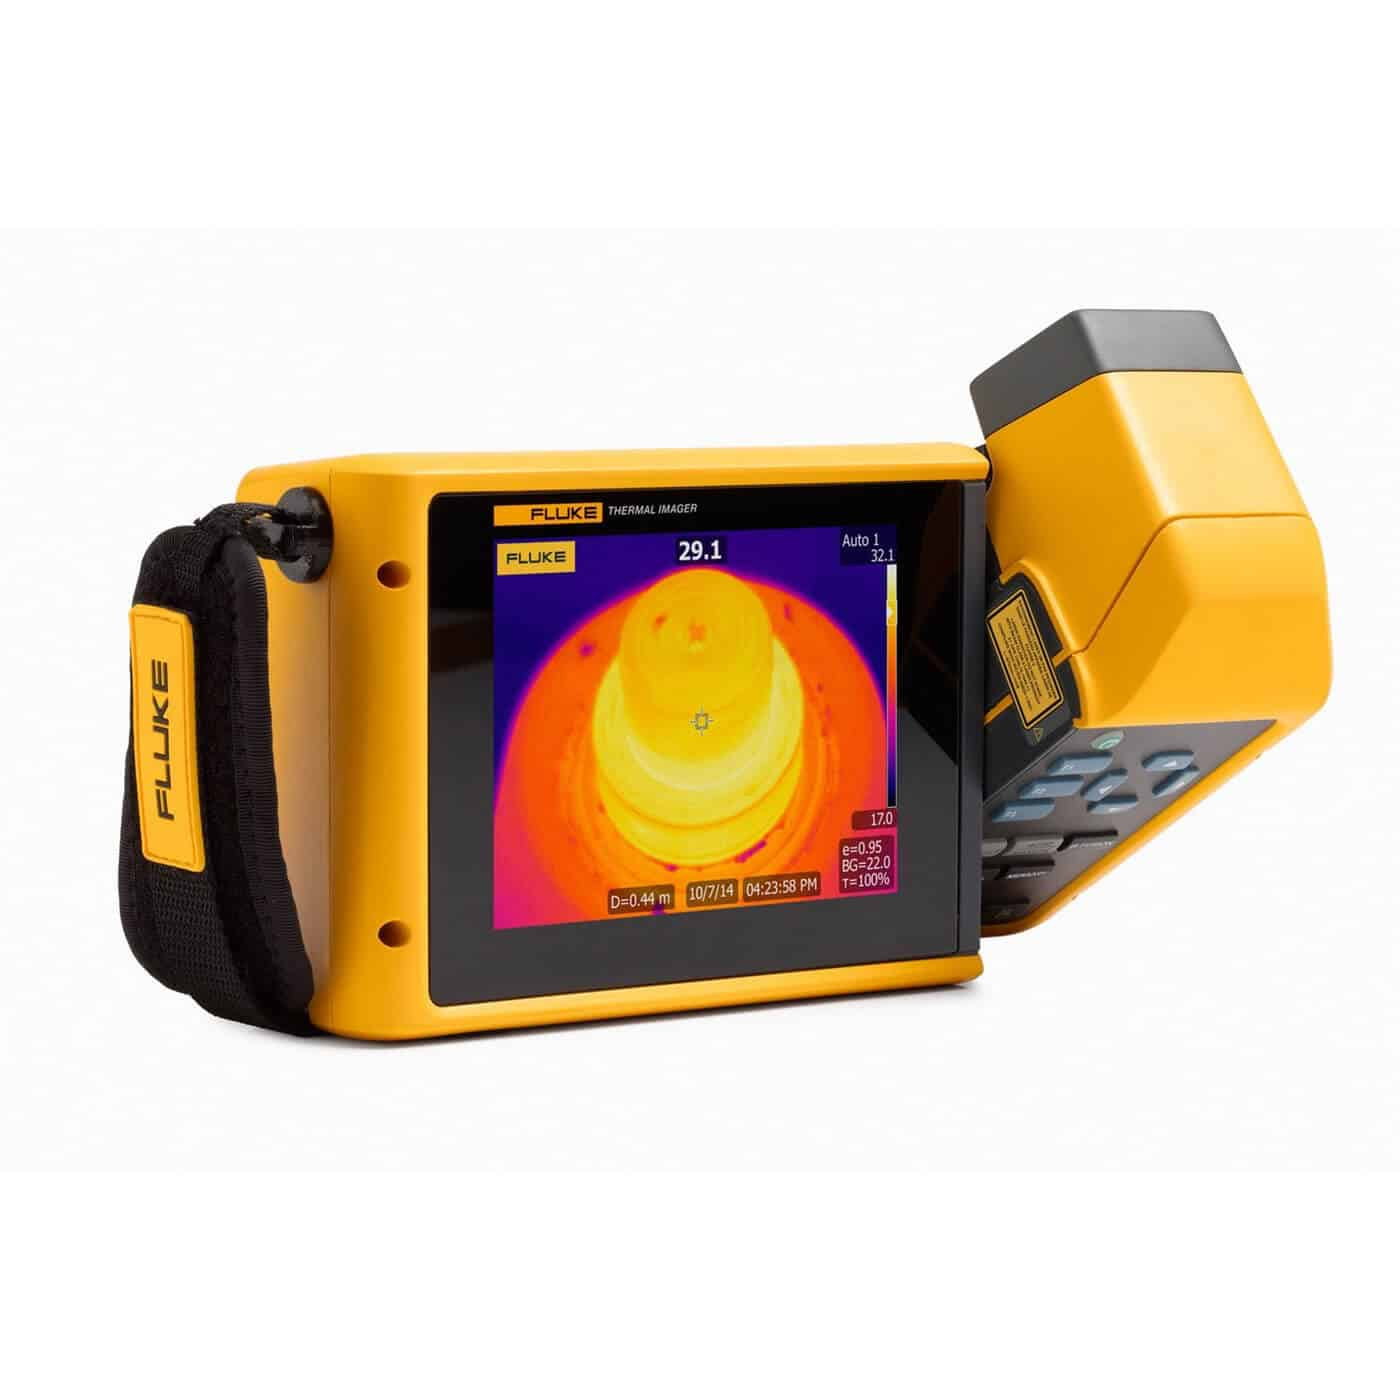 Fluke TIX520 60HZ Thermal Imager review